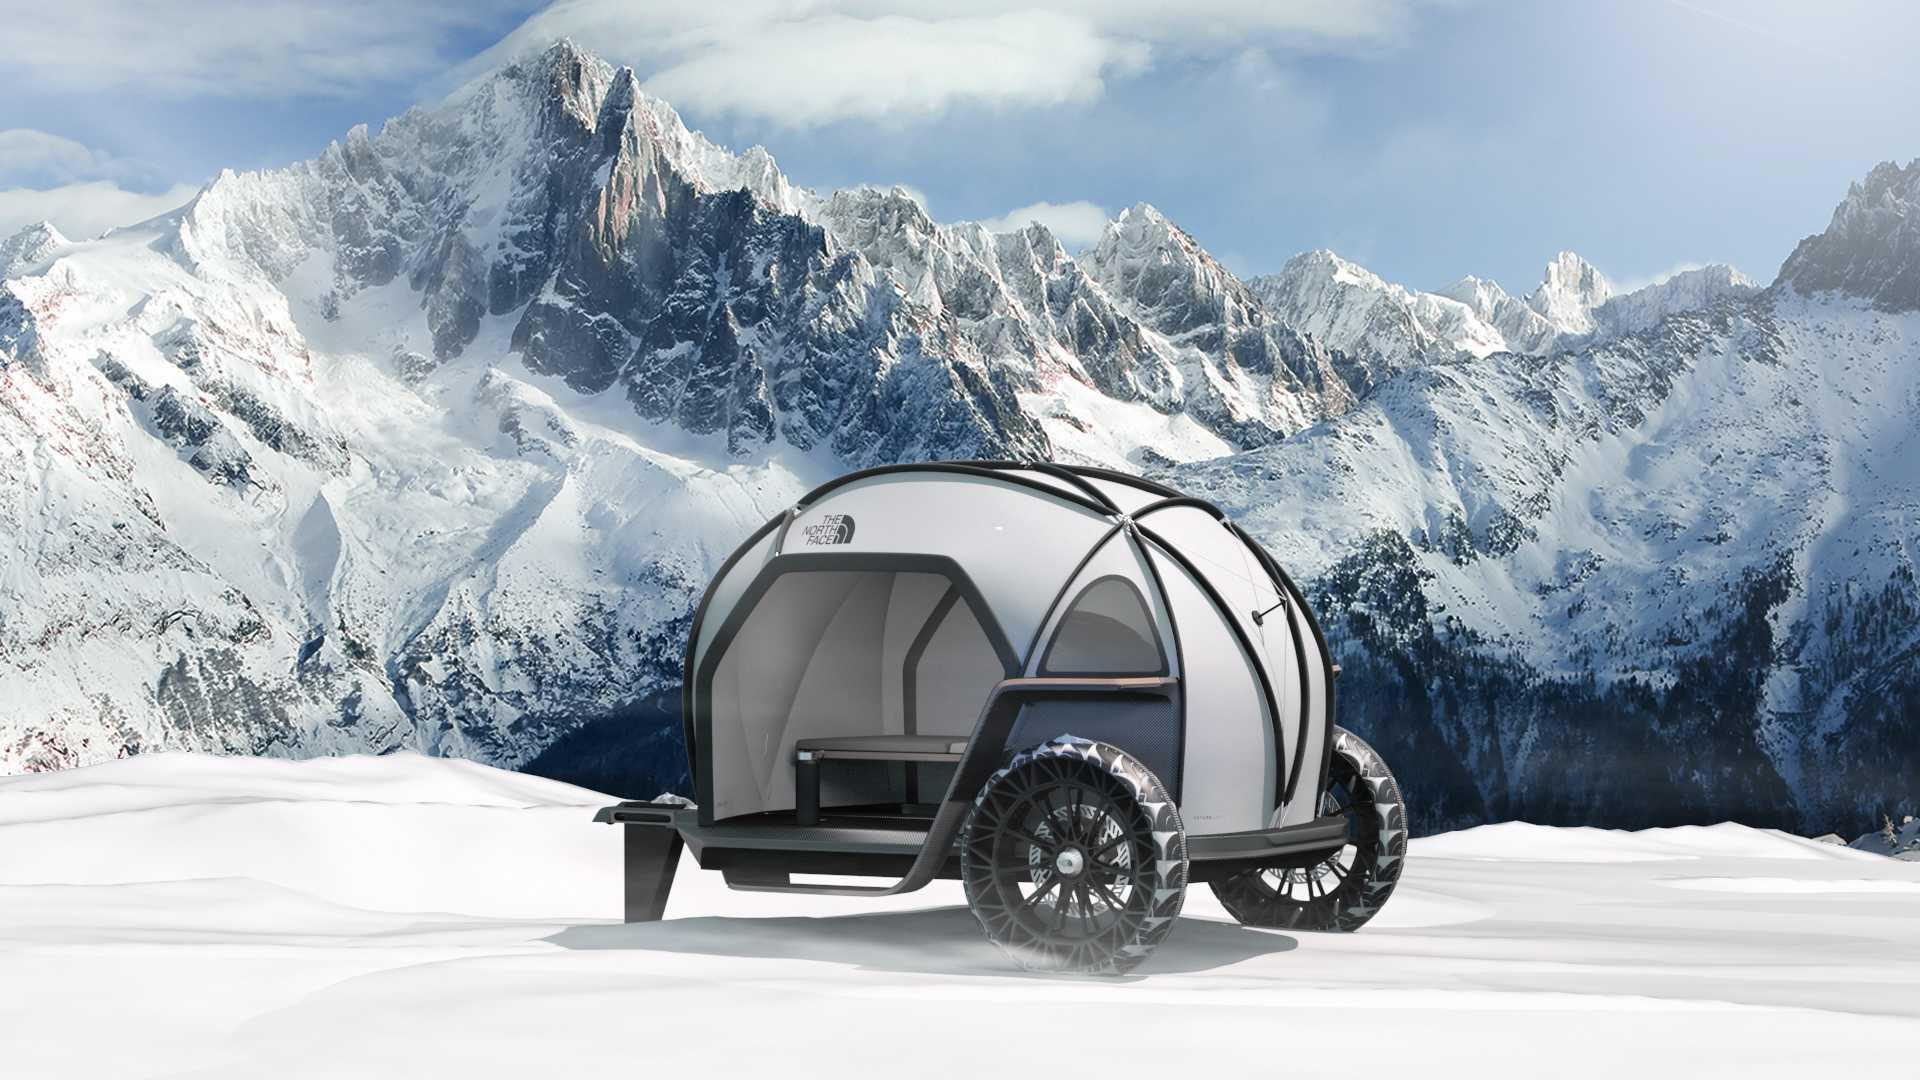 Designworks Collaborates with The North Face to Imagine New Camper Concept.